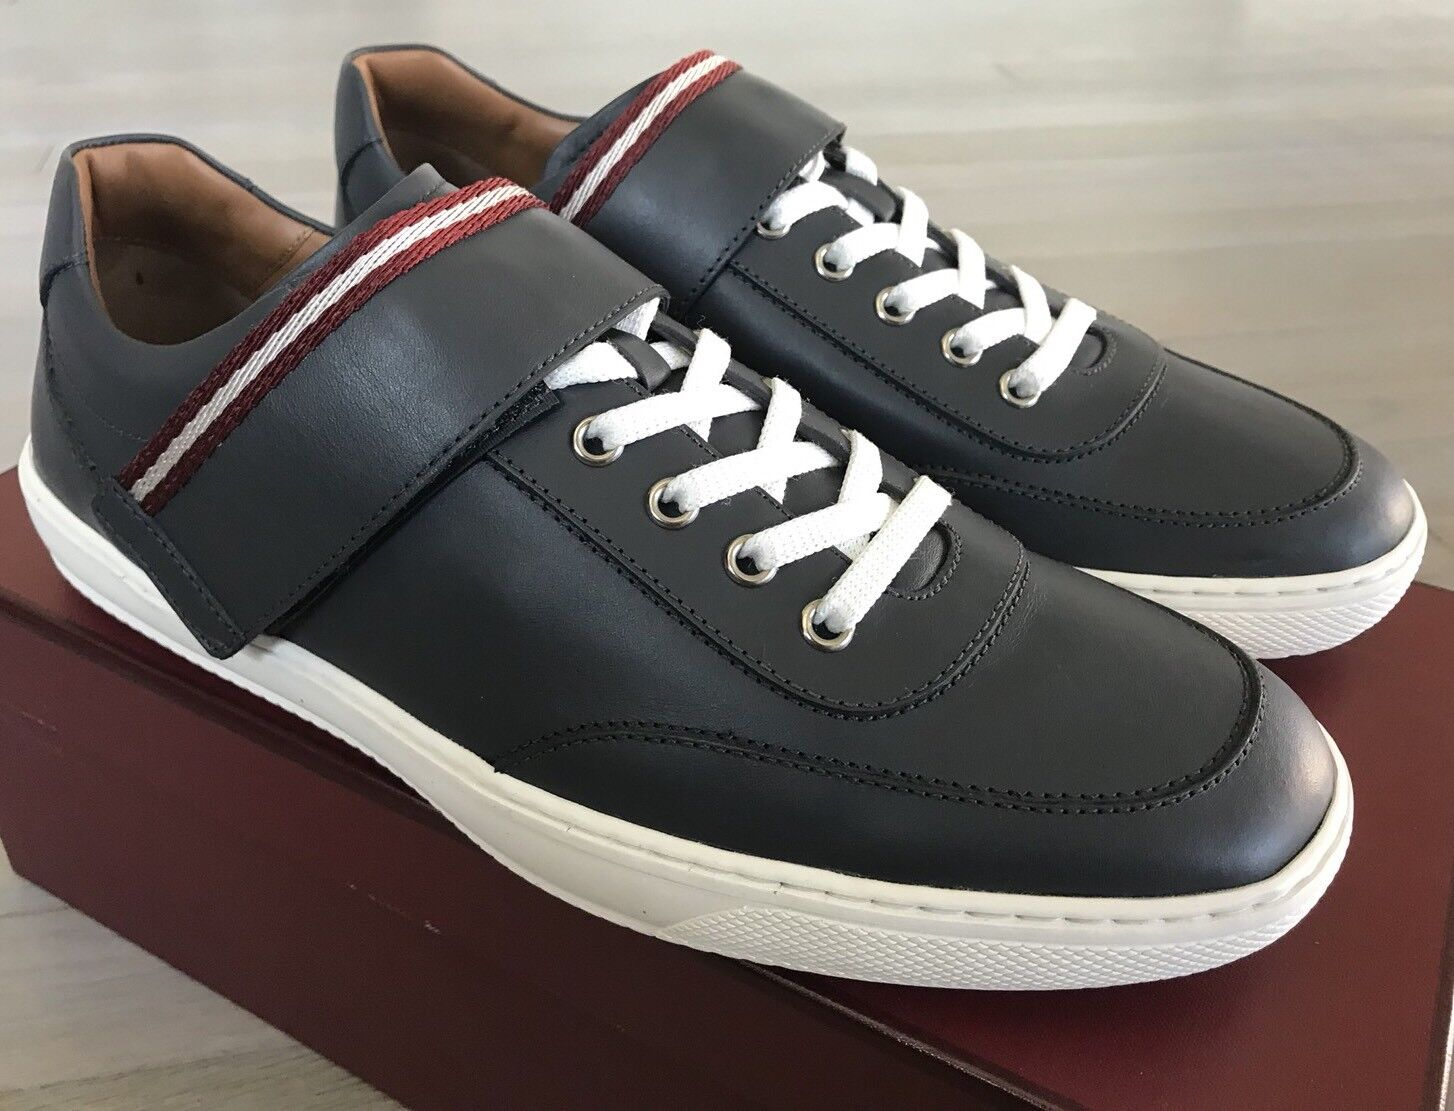 550 Bally Oasys Gray Leather Sneakers size US 11